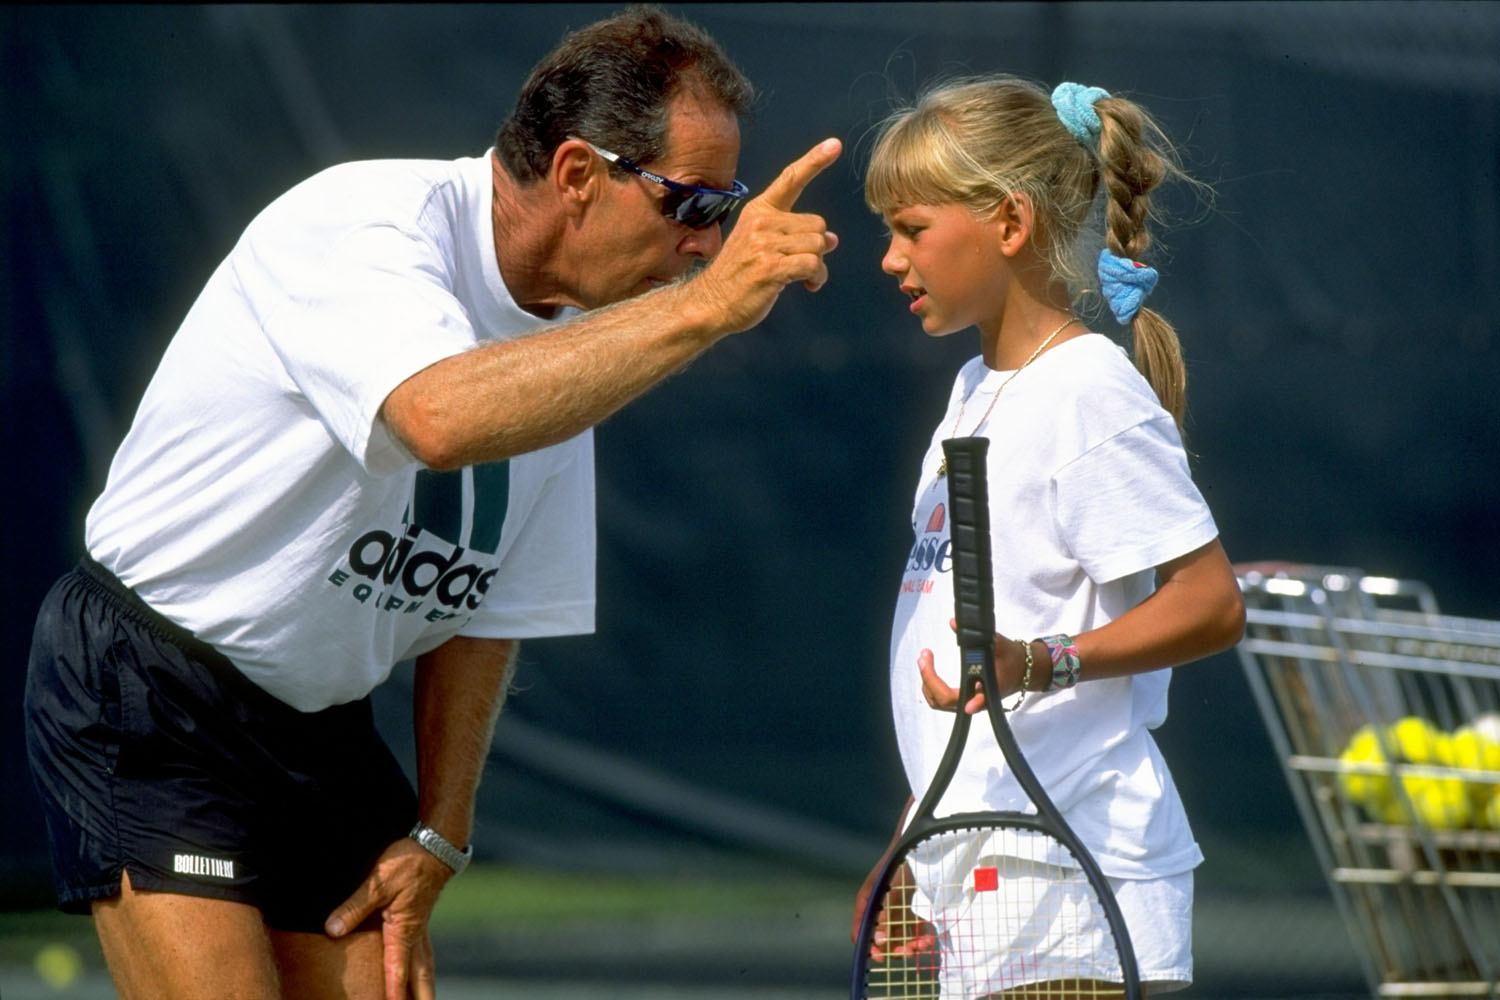 Tennis coach Nick Bollettieri gives instructions to a young Anna Kournikova during a training session at his Tennis Academy in Bradenton, Florida.